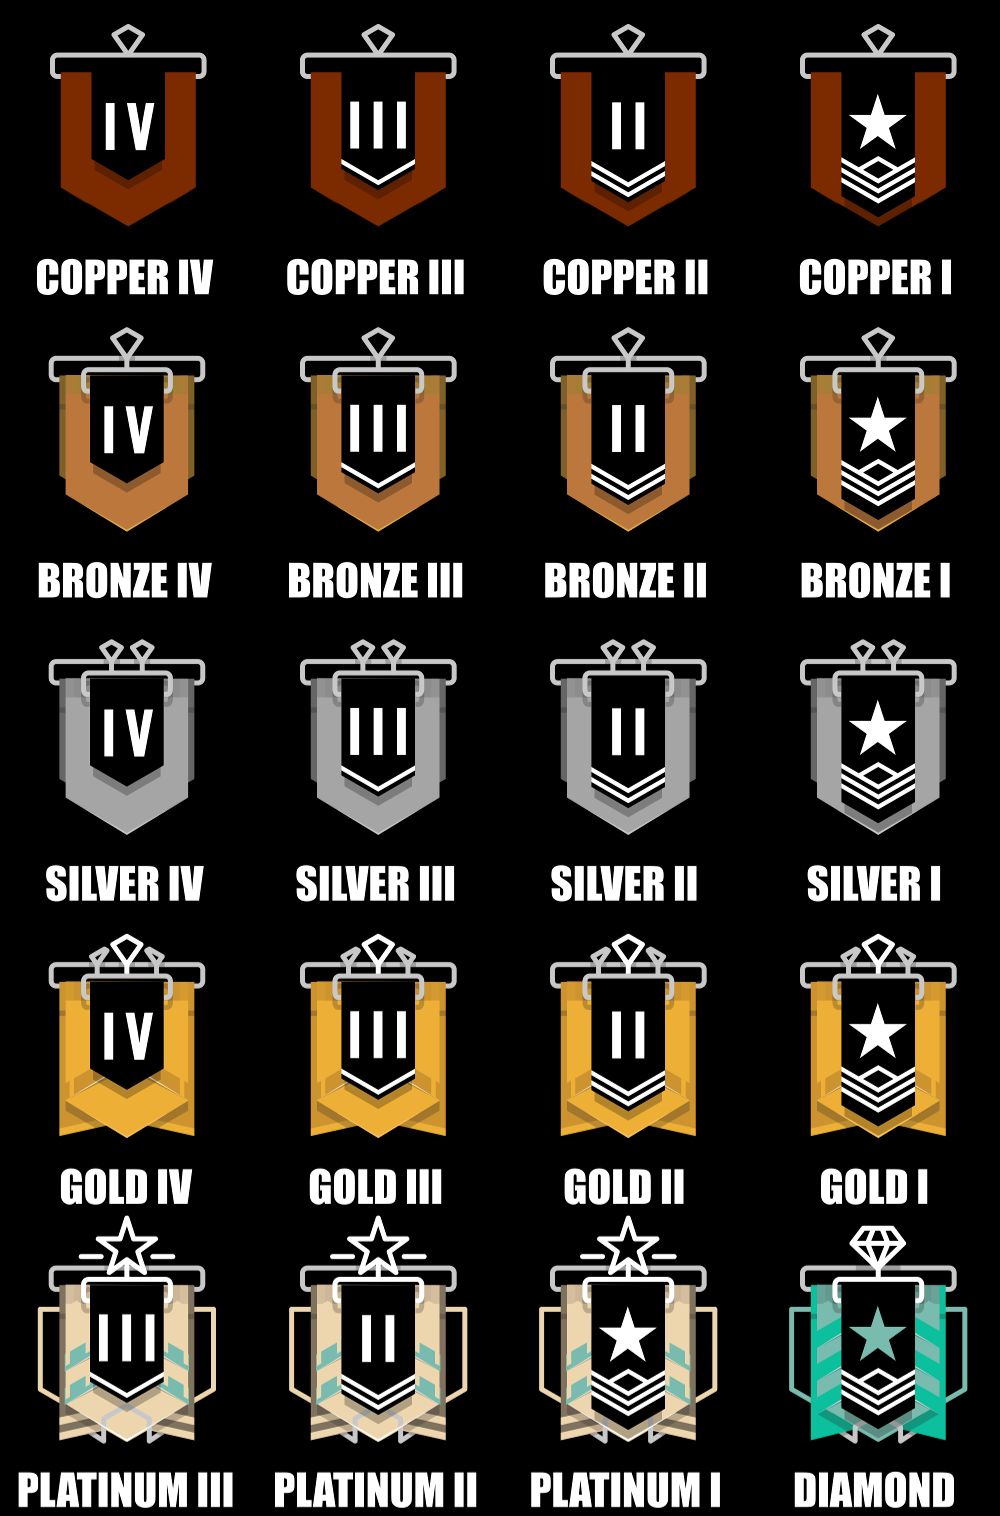 R6S Seasonal Rank distribution and percentage of players - March